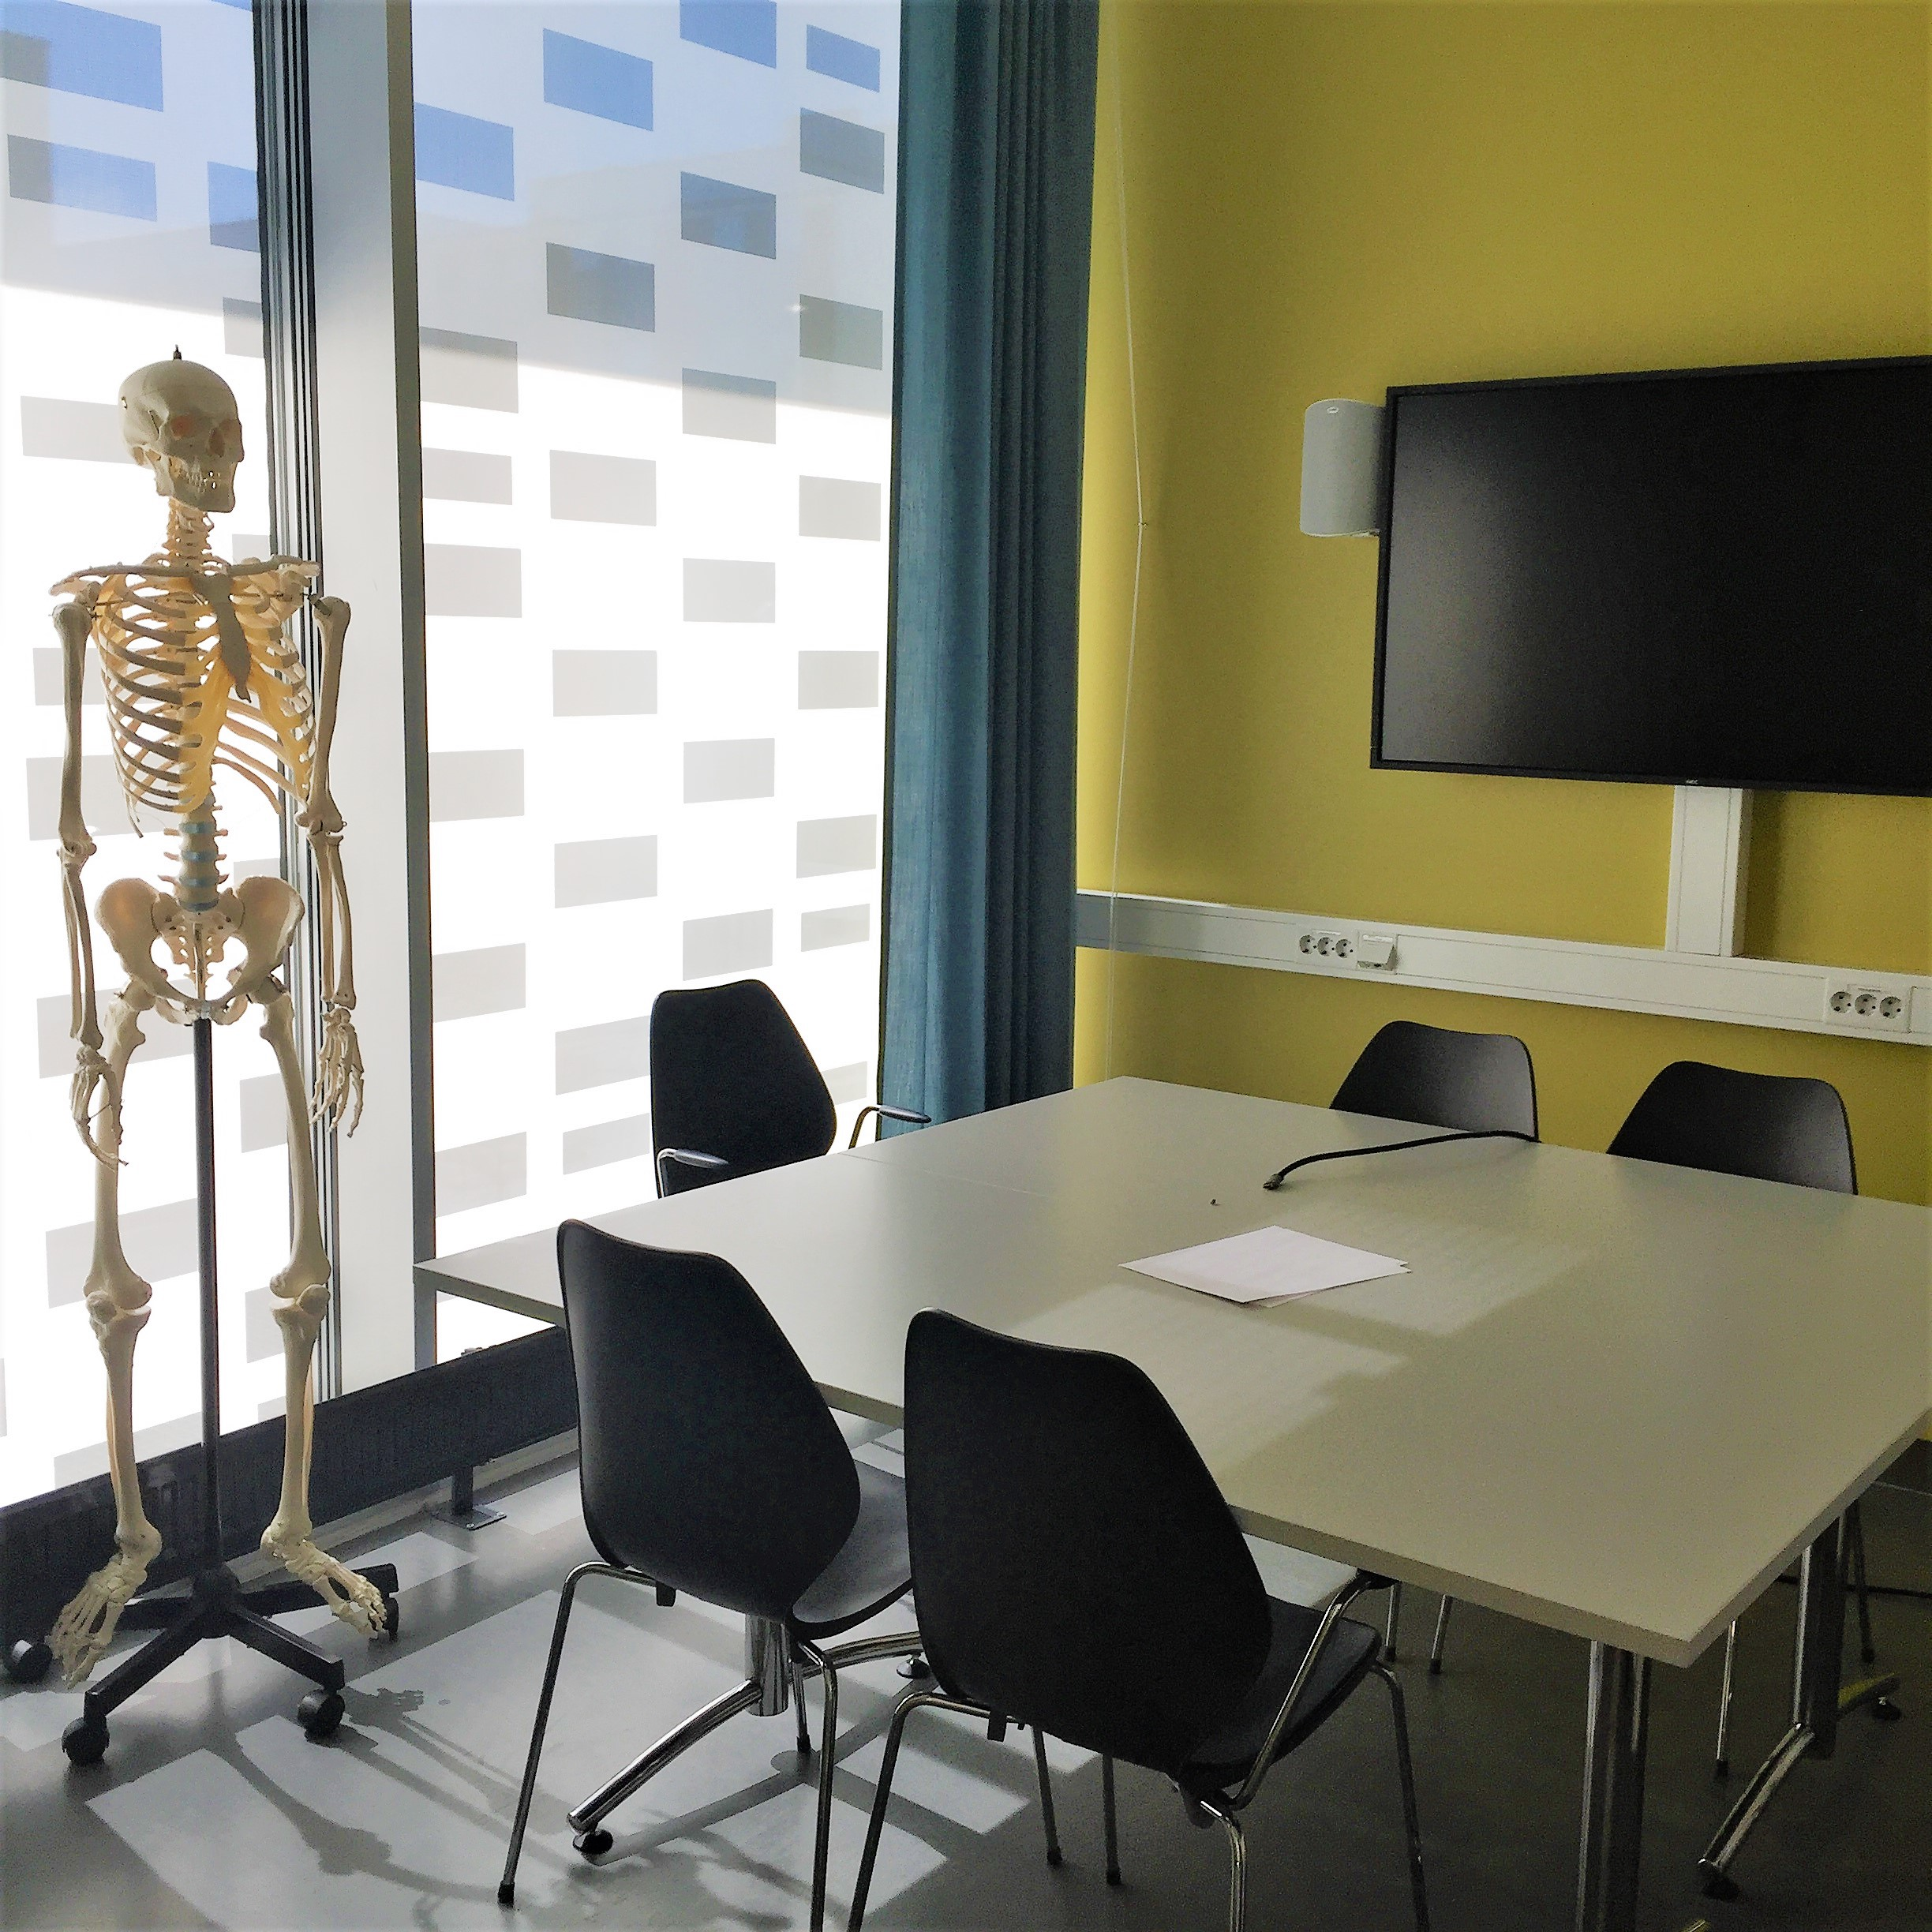 Group study room with PC and skeleton